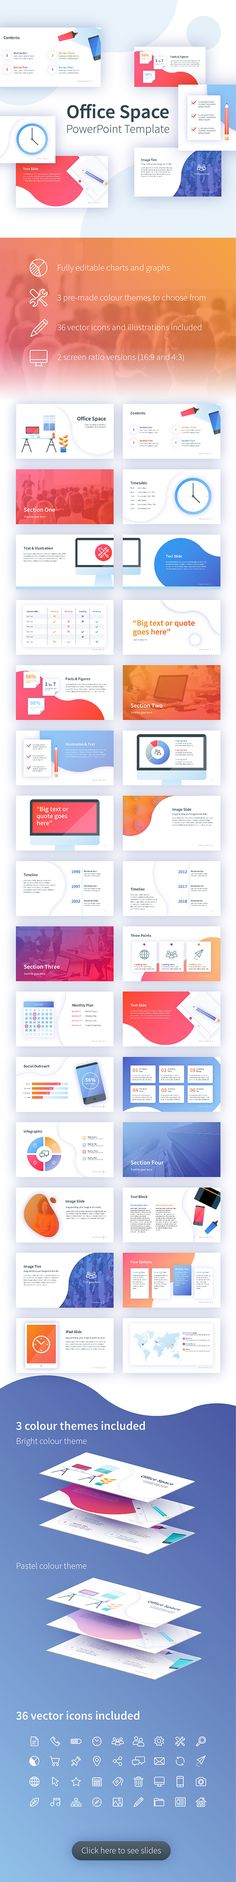 Buy Office Space PowerPoint Template by MonoDesignDerby on GraphicRiver. Office Space PowerPoint Template This creative PowerPoint template uses a range of unique and modern illustrations to. Presentation Slides, Presentation Design, Presentation Templates, Keynote Design, Creative Powerpoint Templates, Charts And Graphs, Catalog Design, Party Flyer, Keynote Template